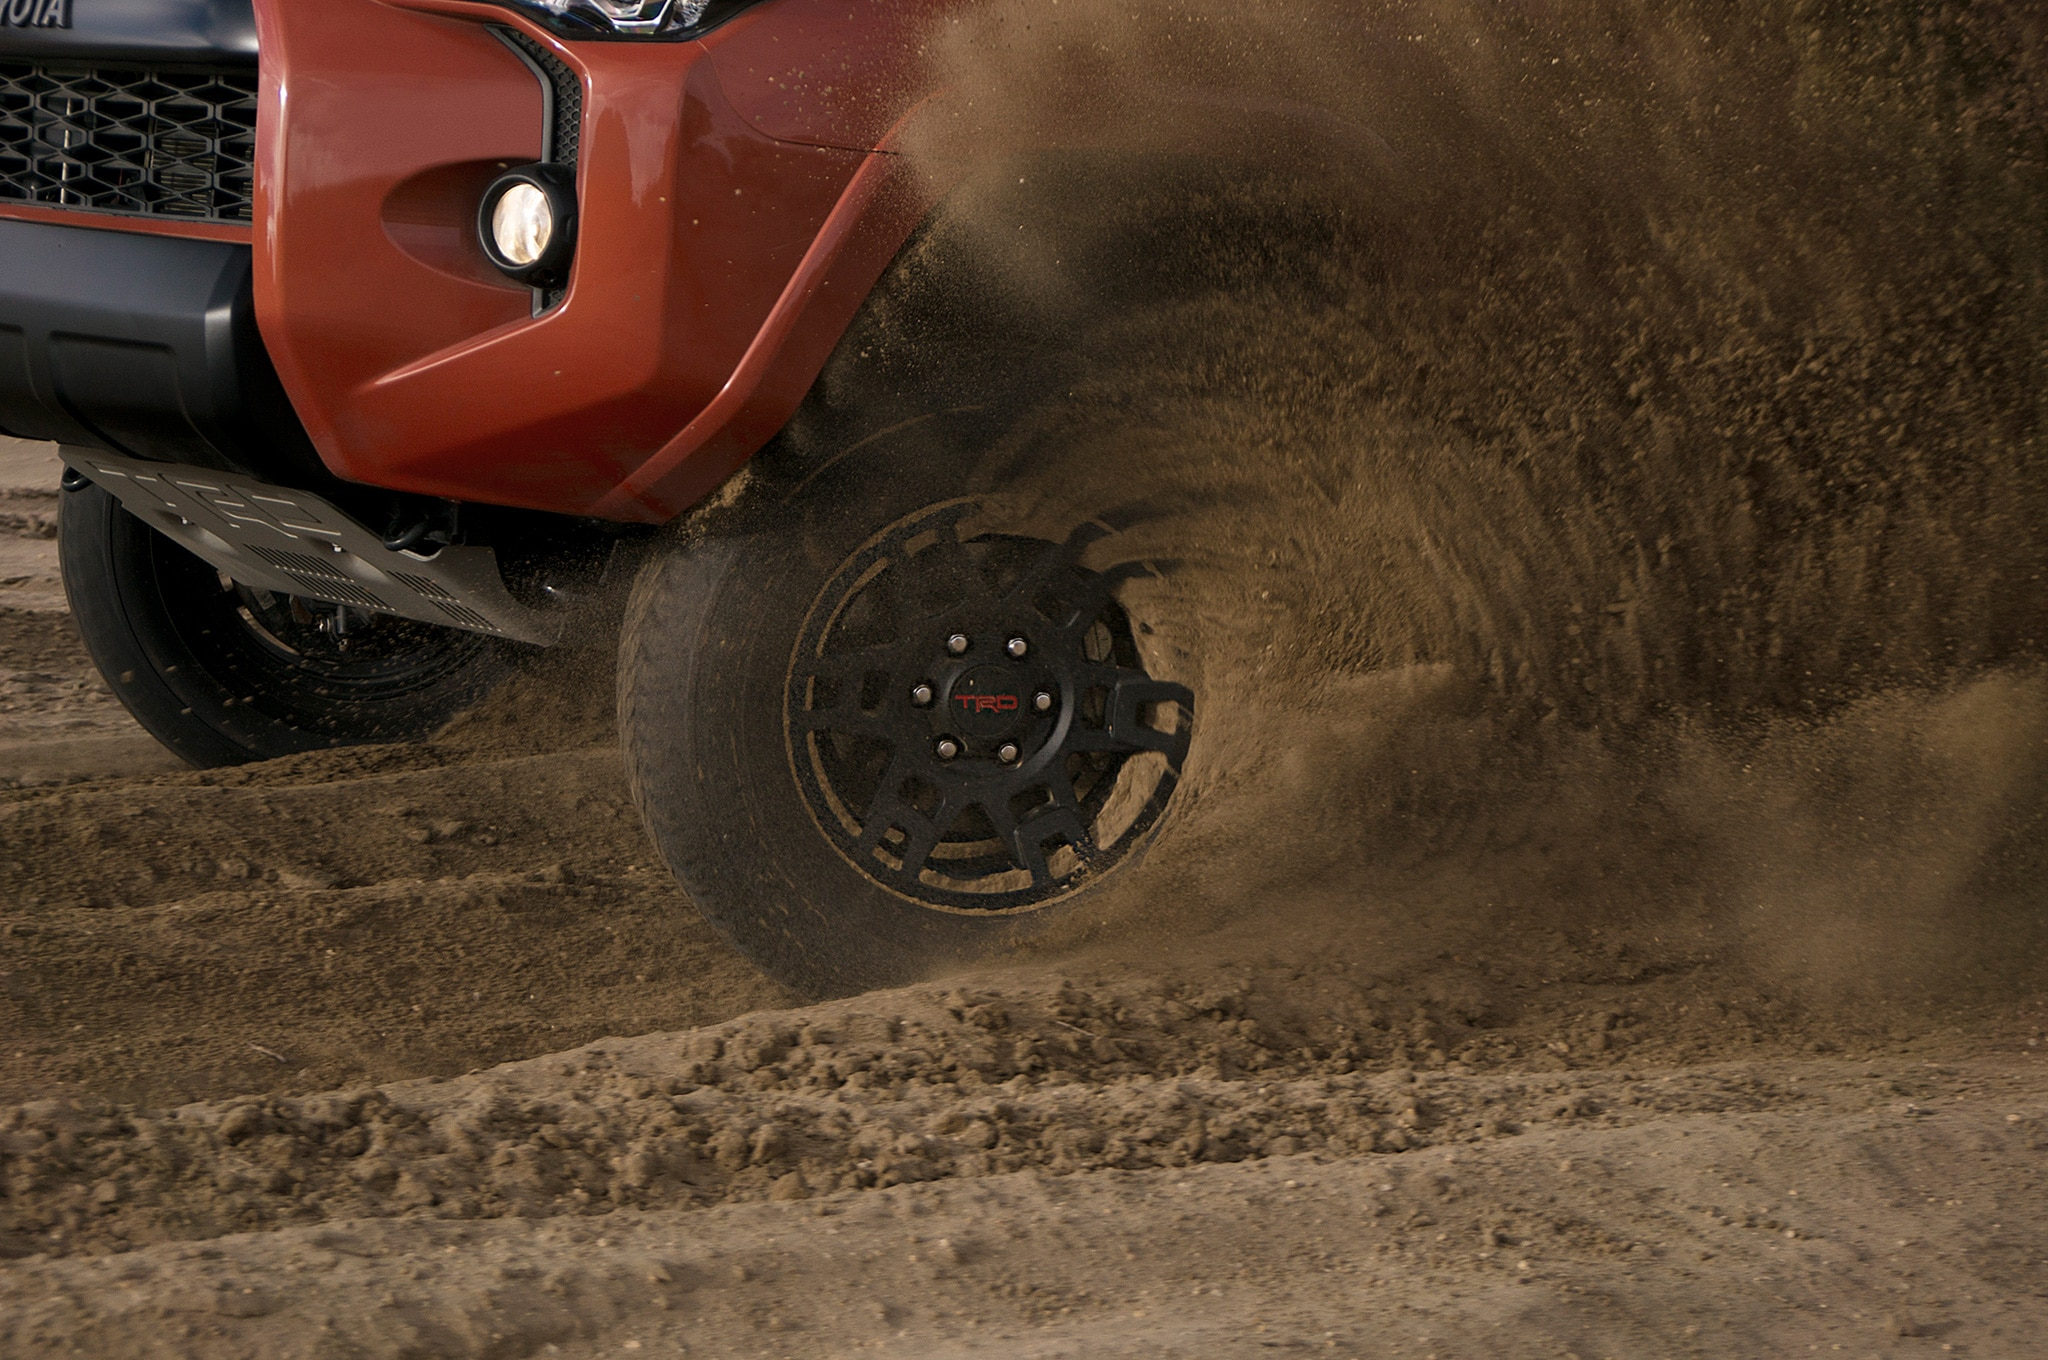 2015 Toyota 4Runner TRD Pro wheel spinning